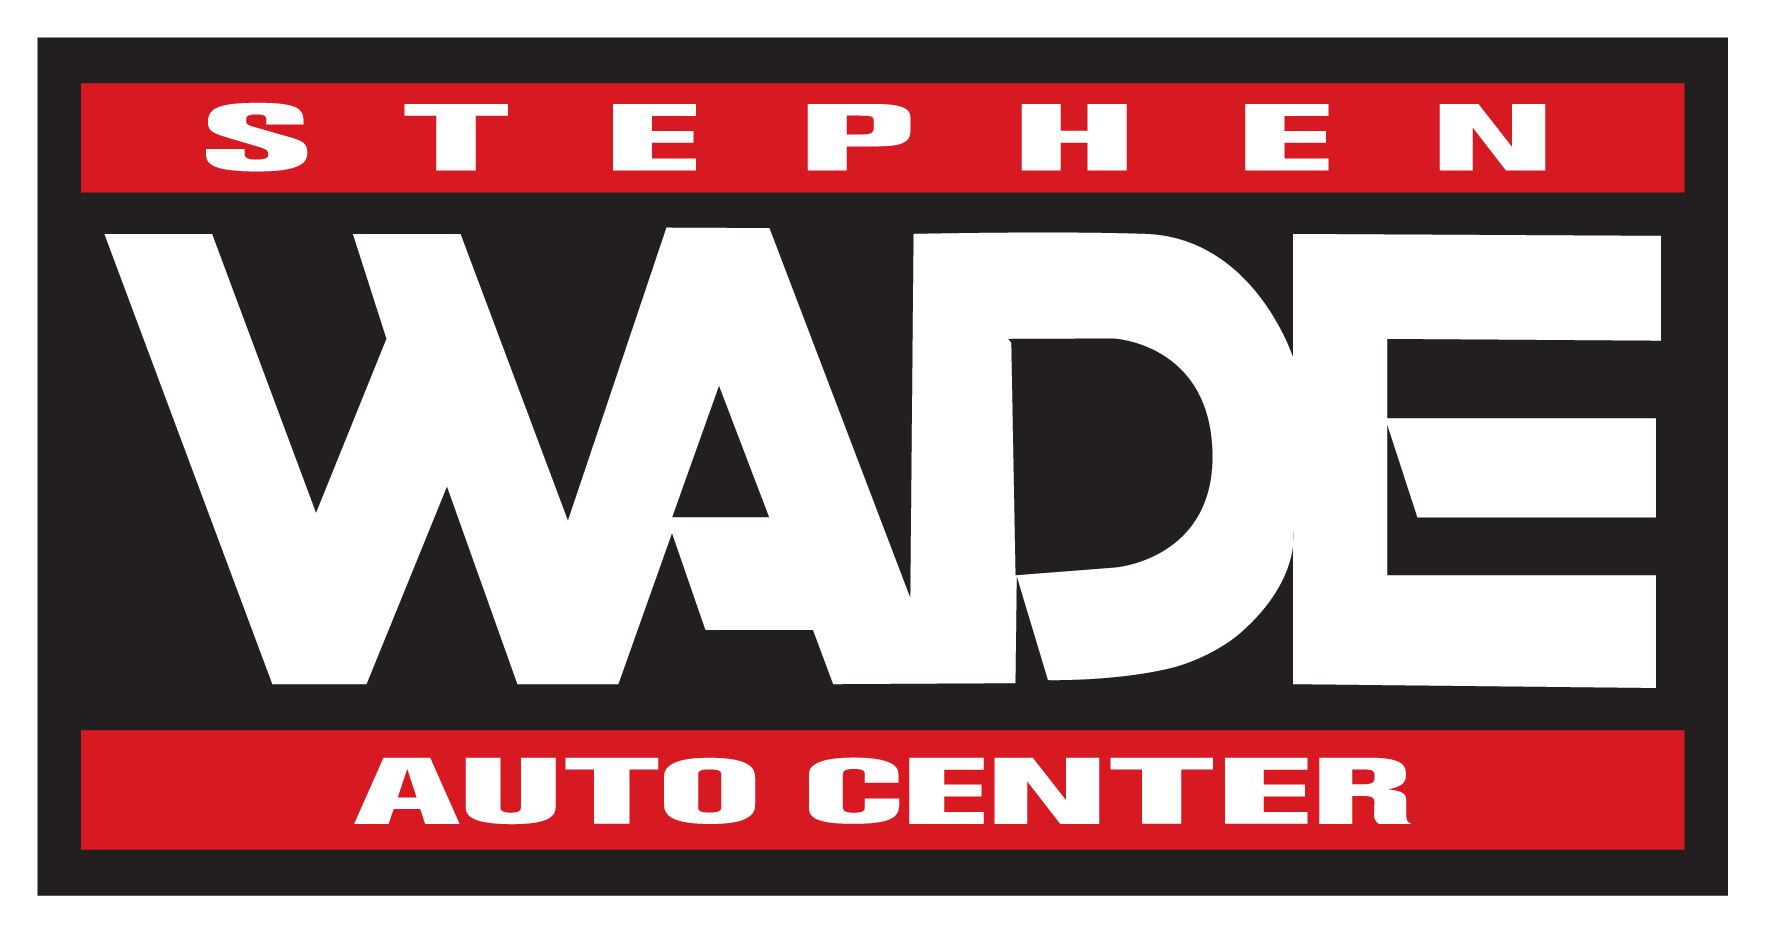 Stephen Wade Auto Center Sponsors the Hurricane Mud Run